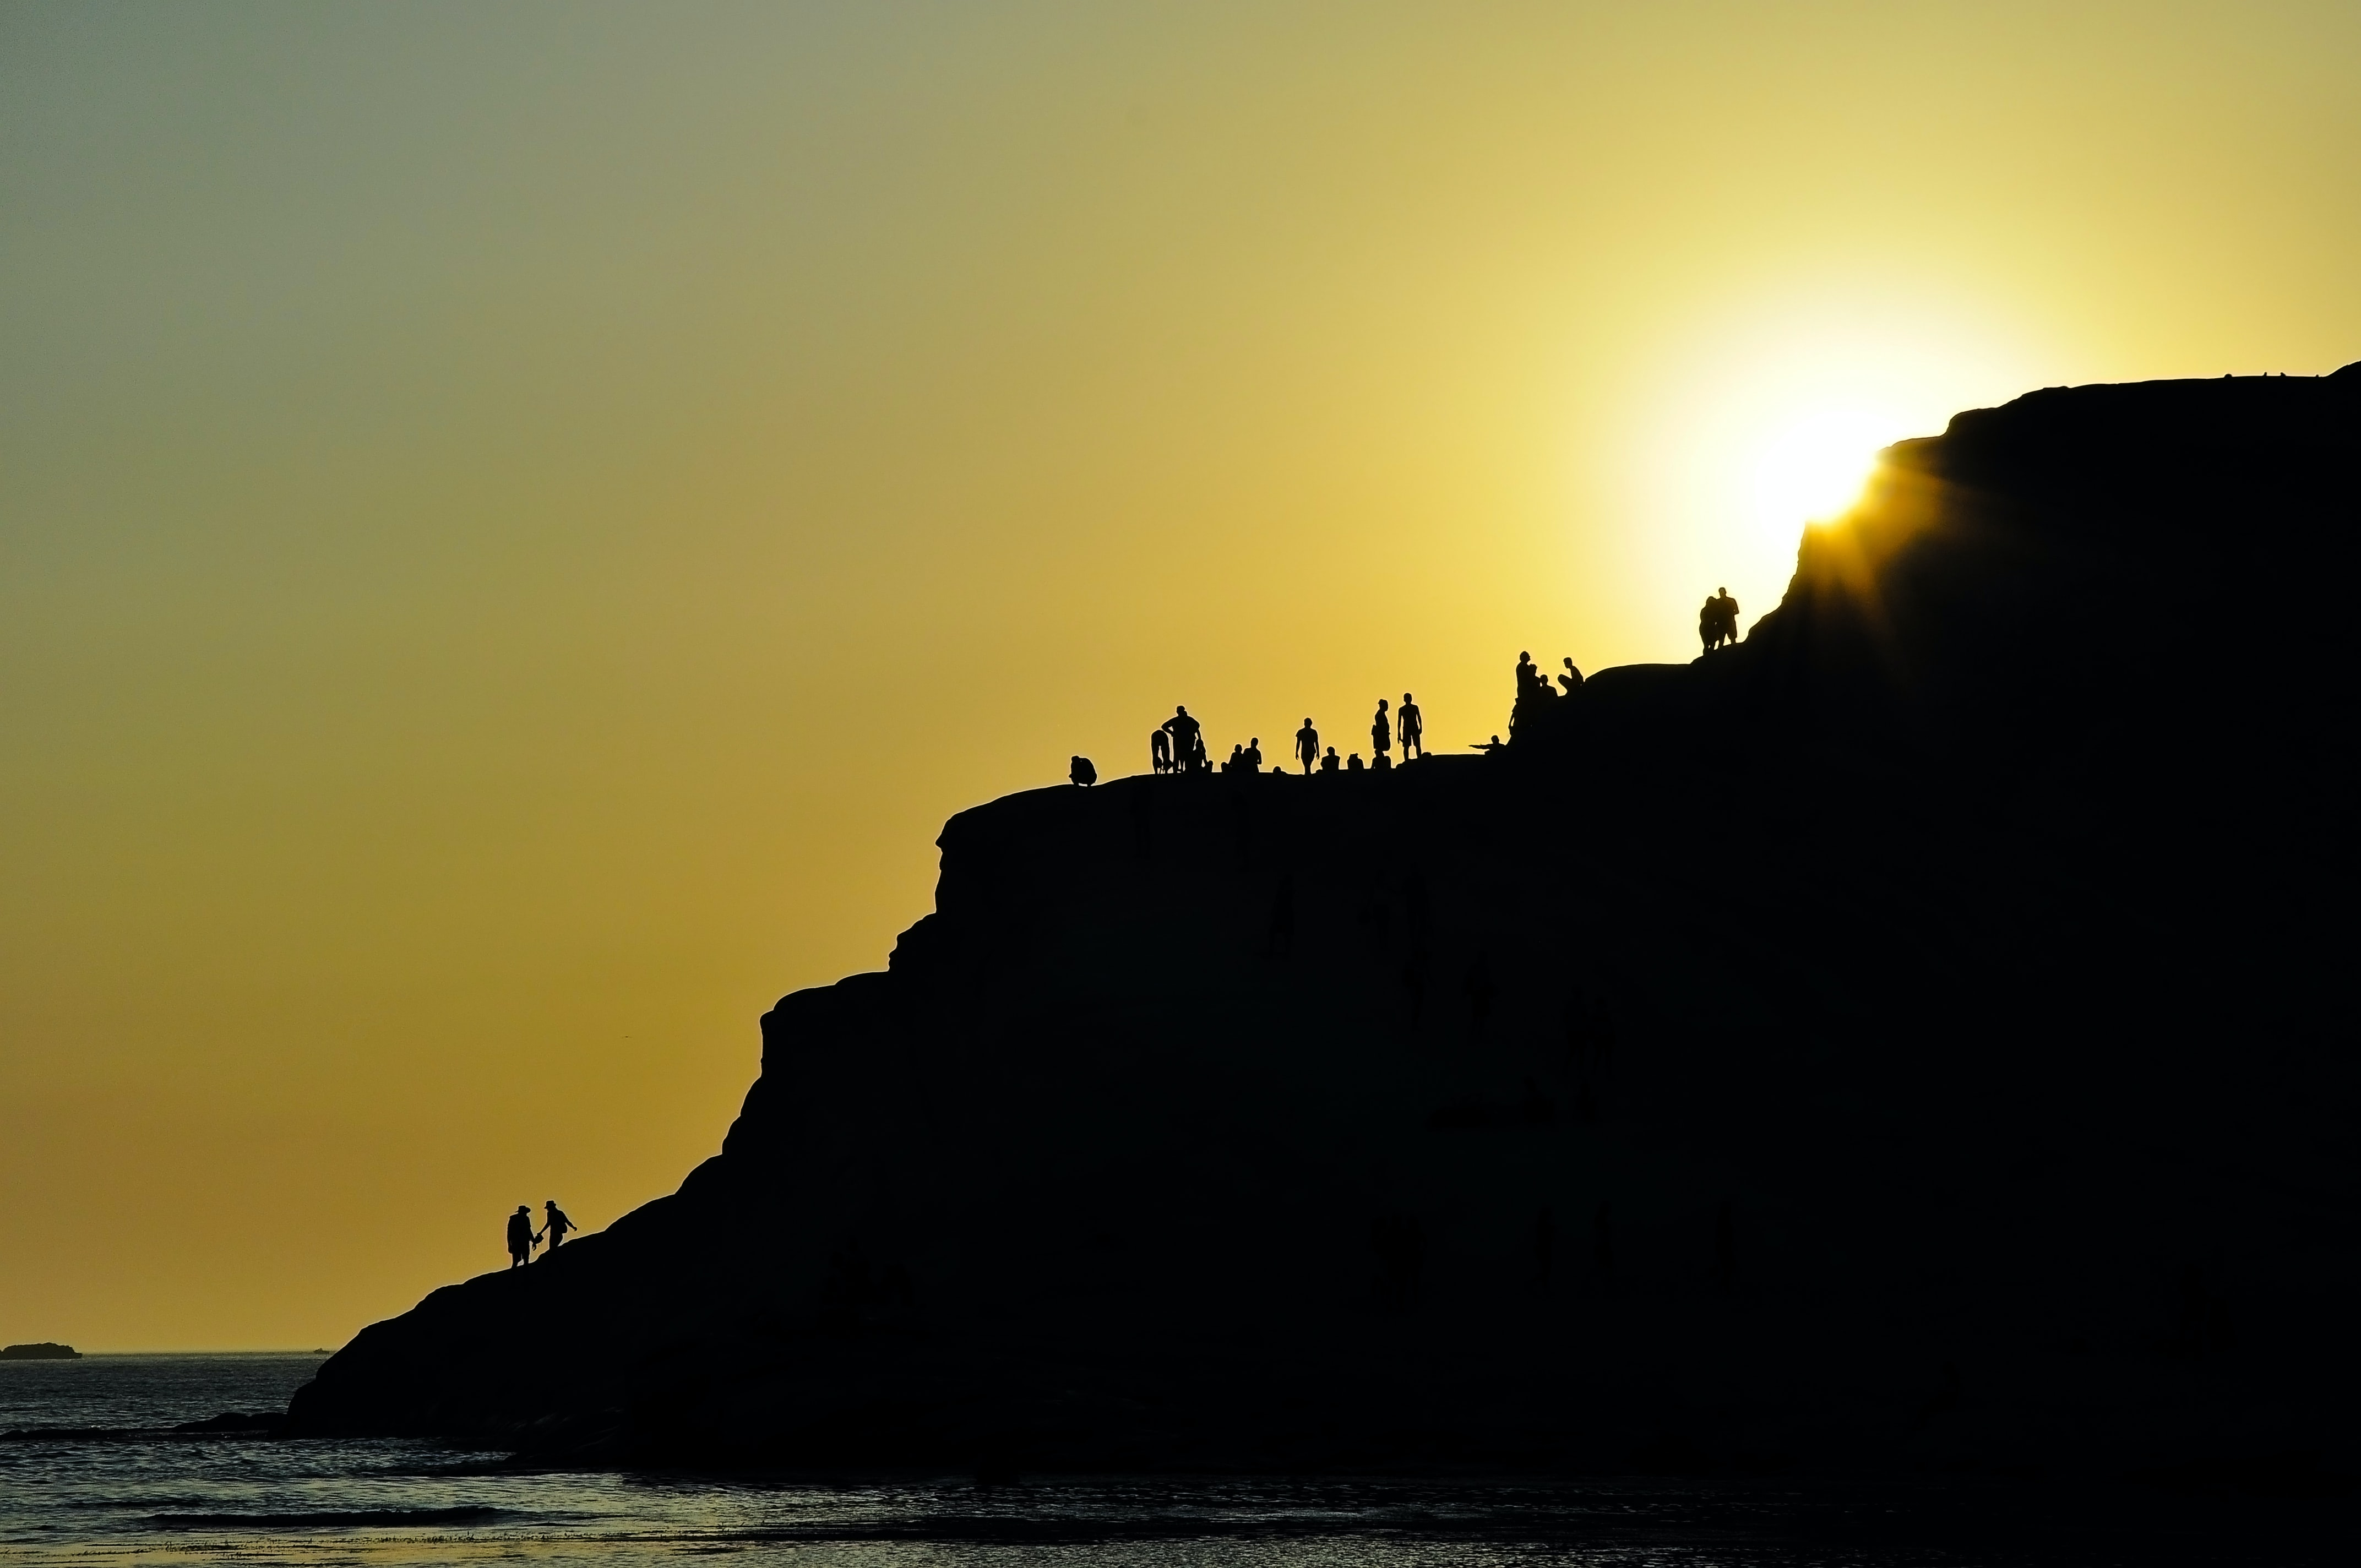 silhouette of group of people on hills